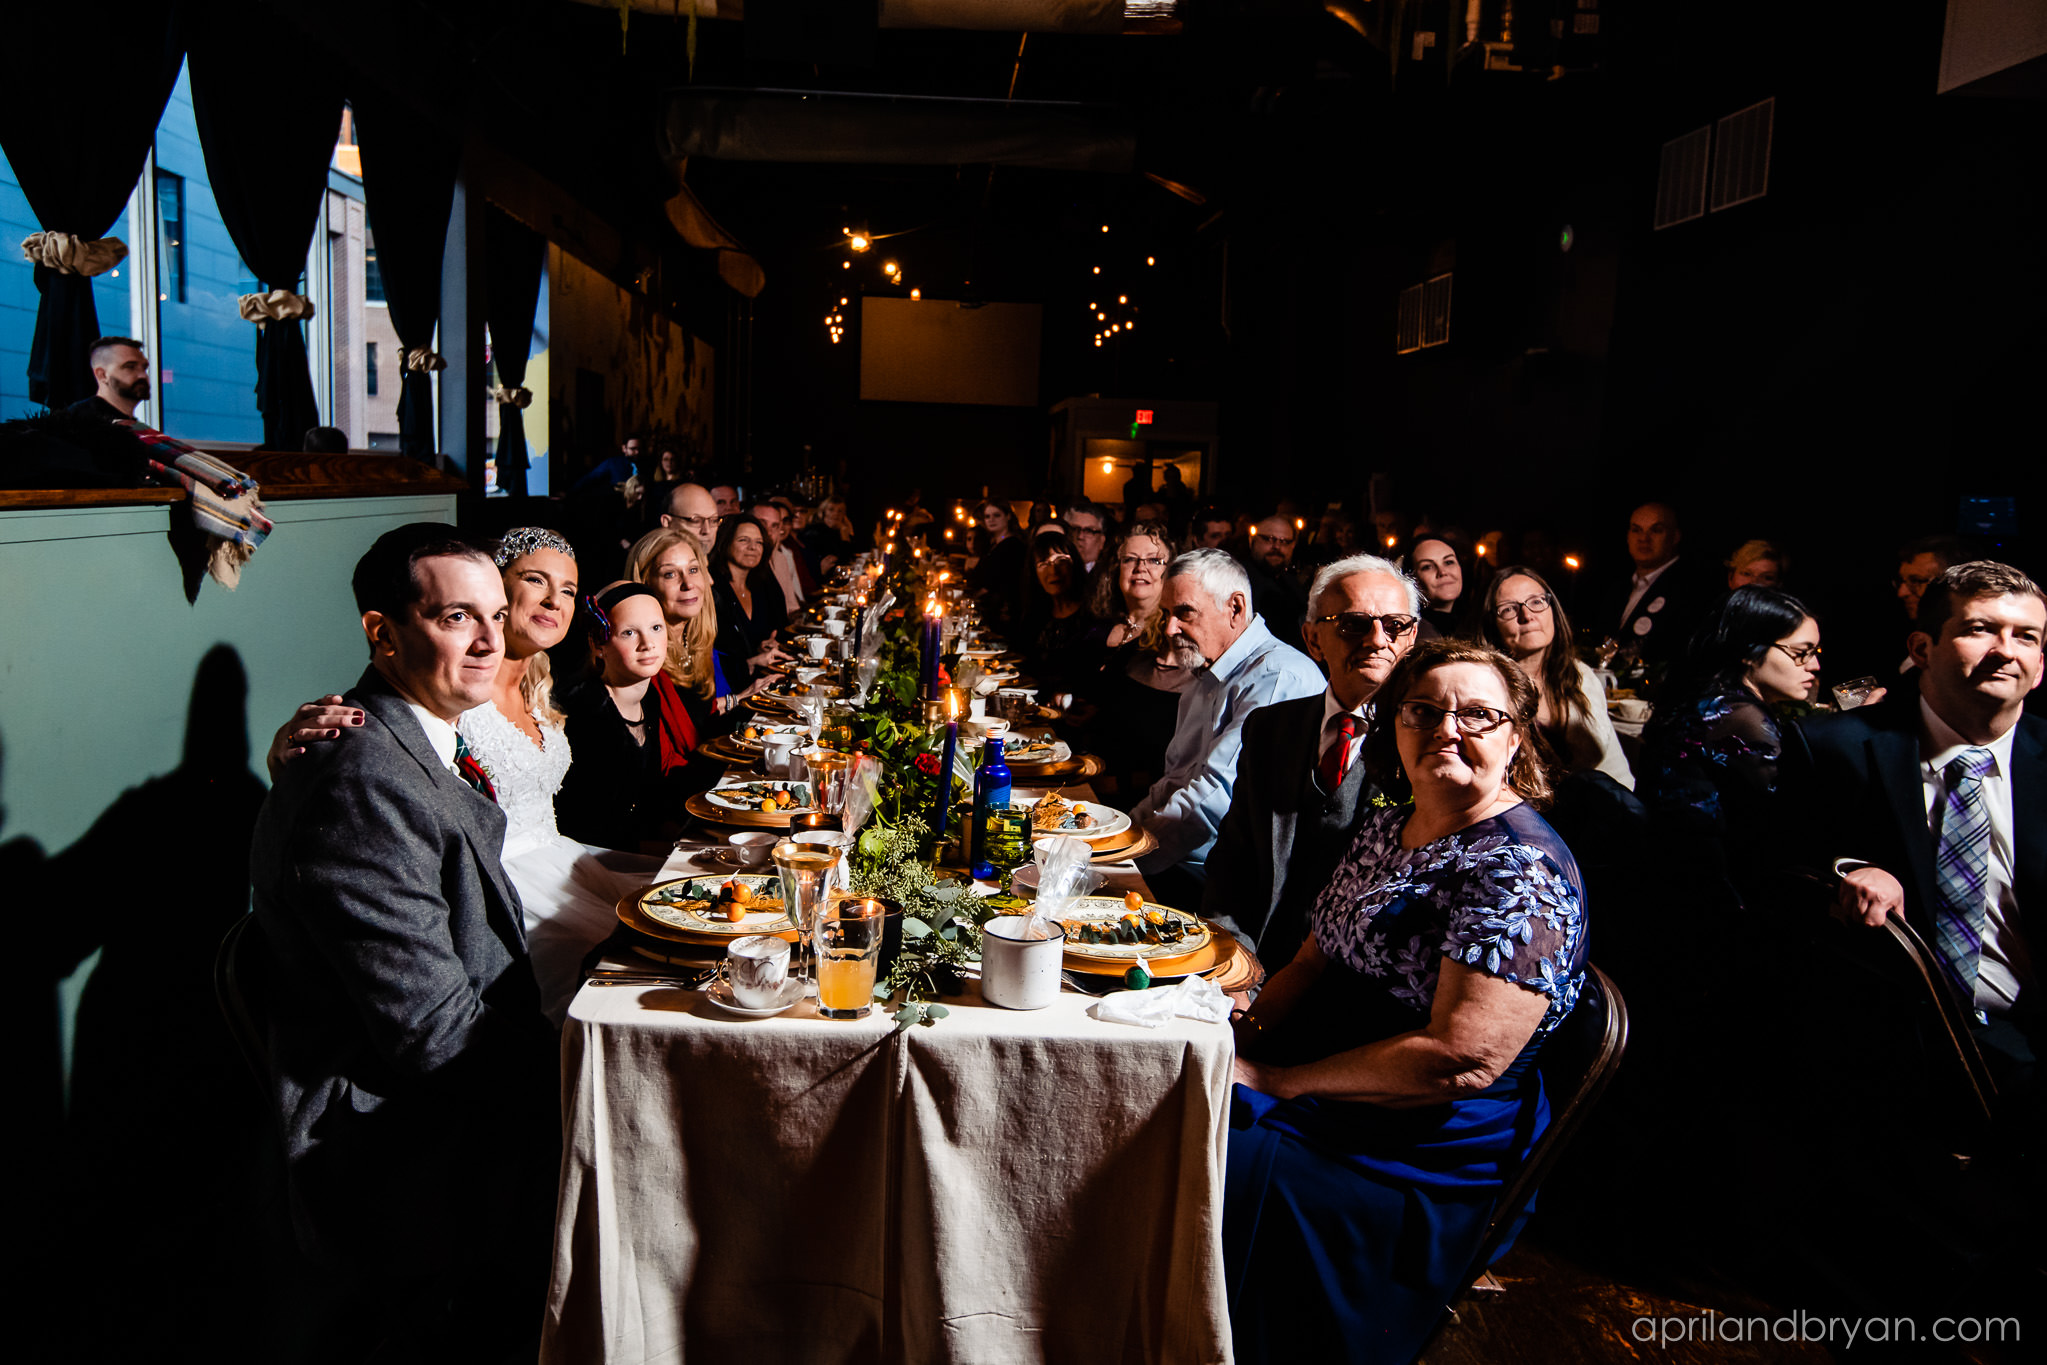 Huge king tables seat the guests at the wedding and for the most part is only lit by candle light. Nicholas and Rebecca Fasnacht tie the not at Tellus360 on November 1, 2019. Captured by April & Bryan Photography and featured on Dream Weddings.